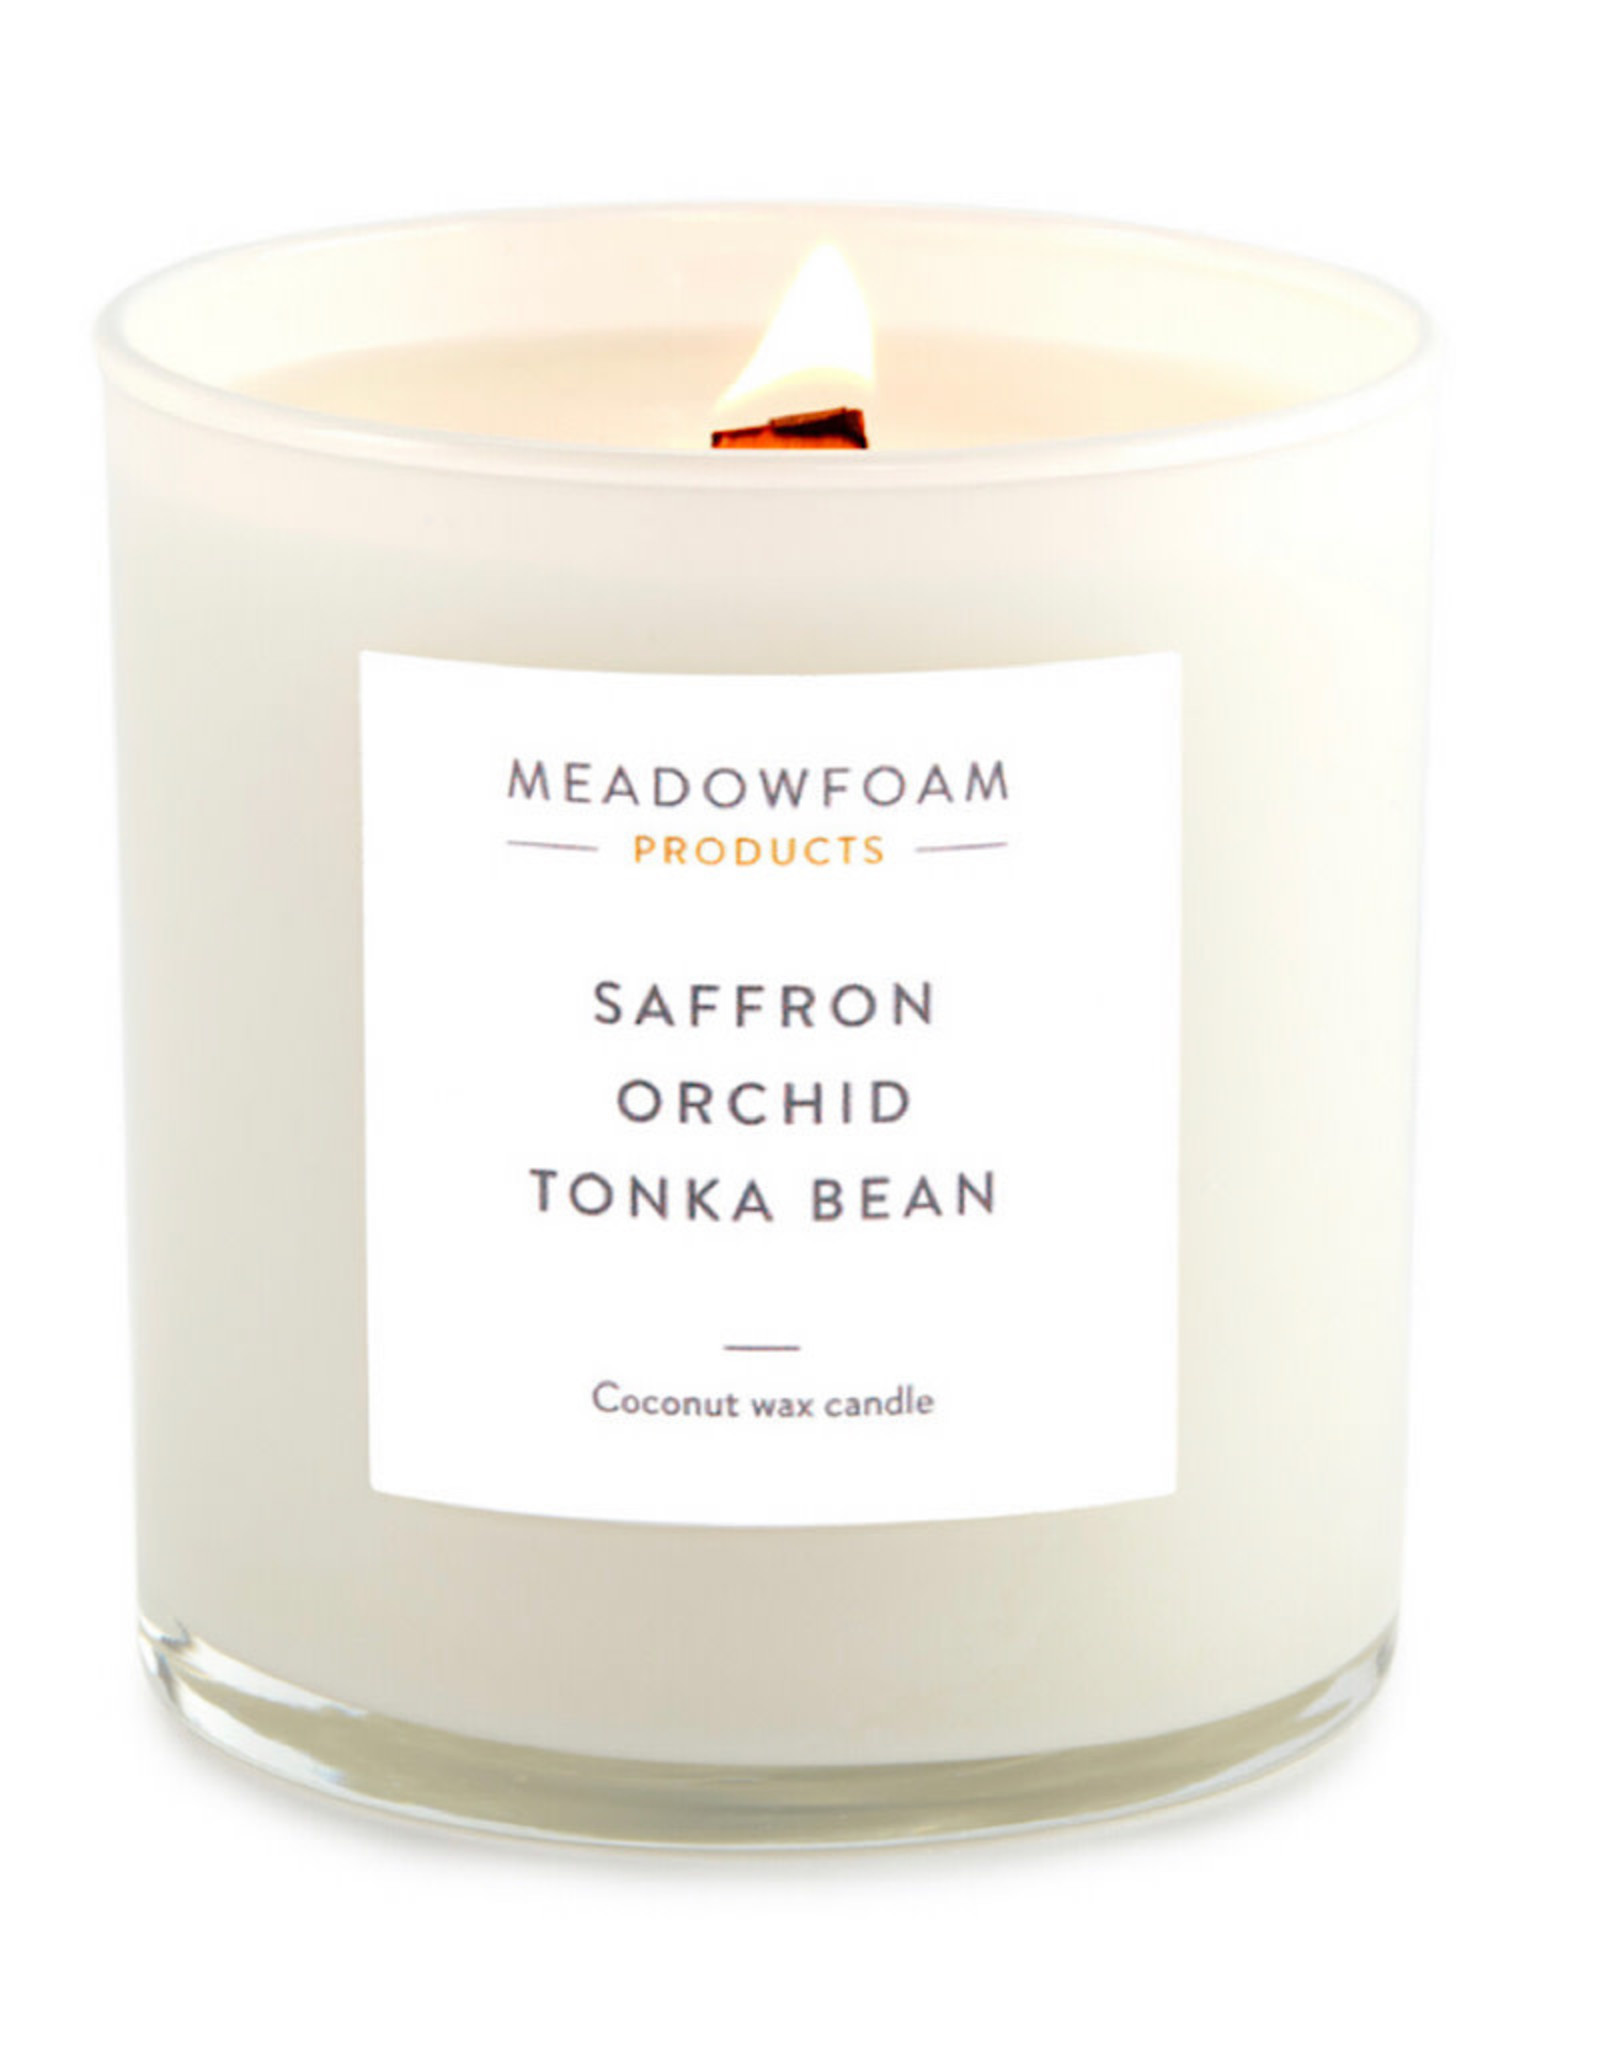 Meadowfoam 13.5oz Candle WOOD Wick in Cocktail Glass